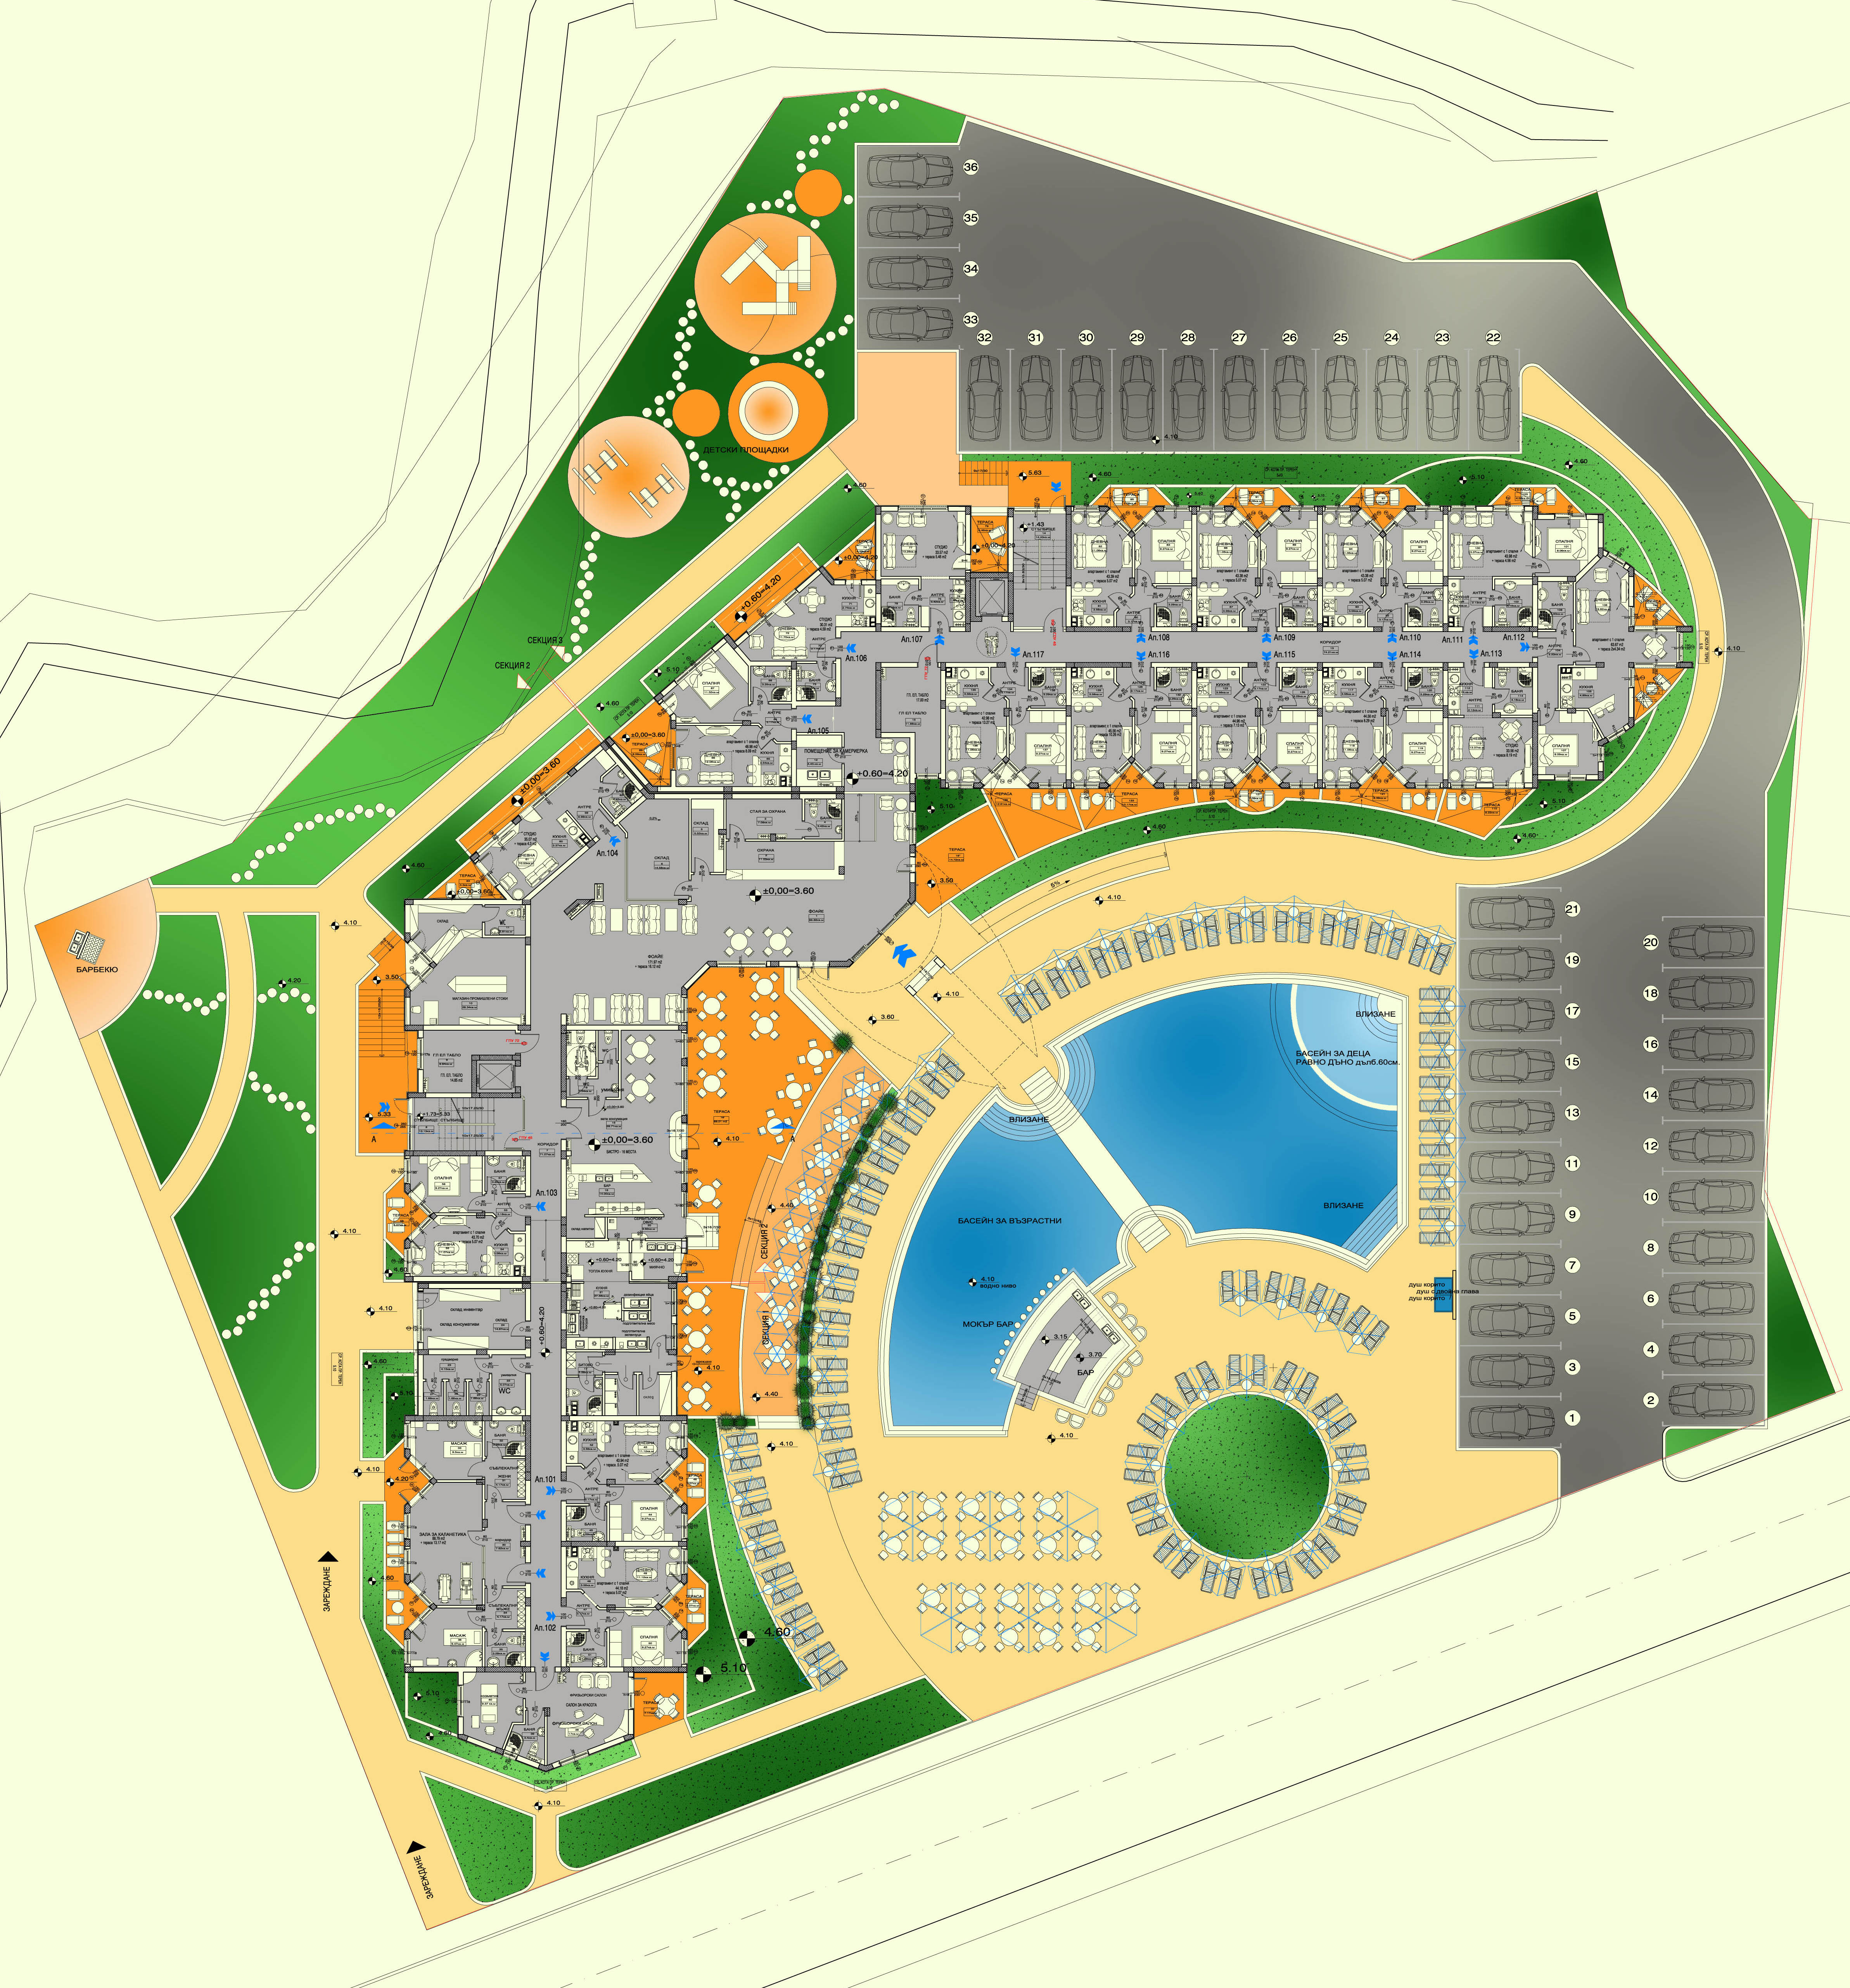 Resort Plans – Daily Motivational Quotes